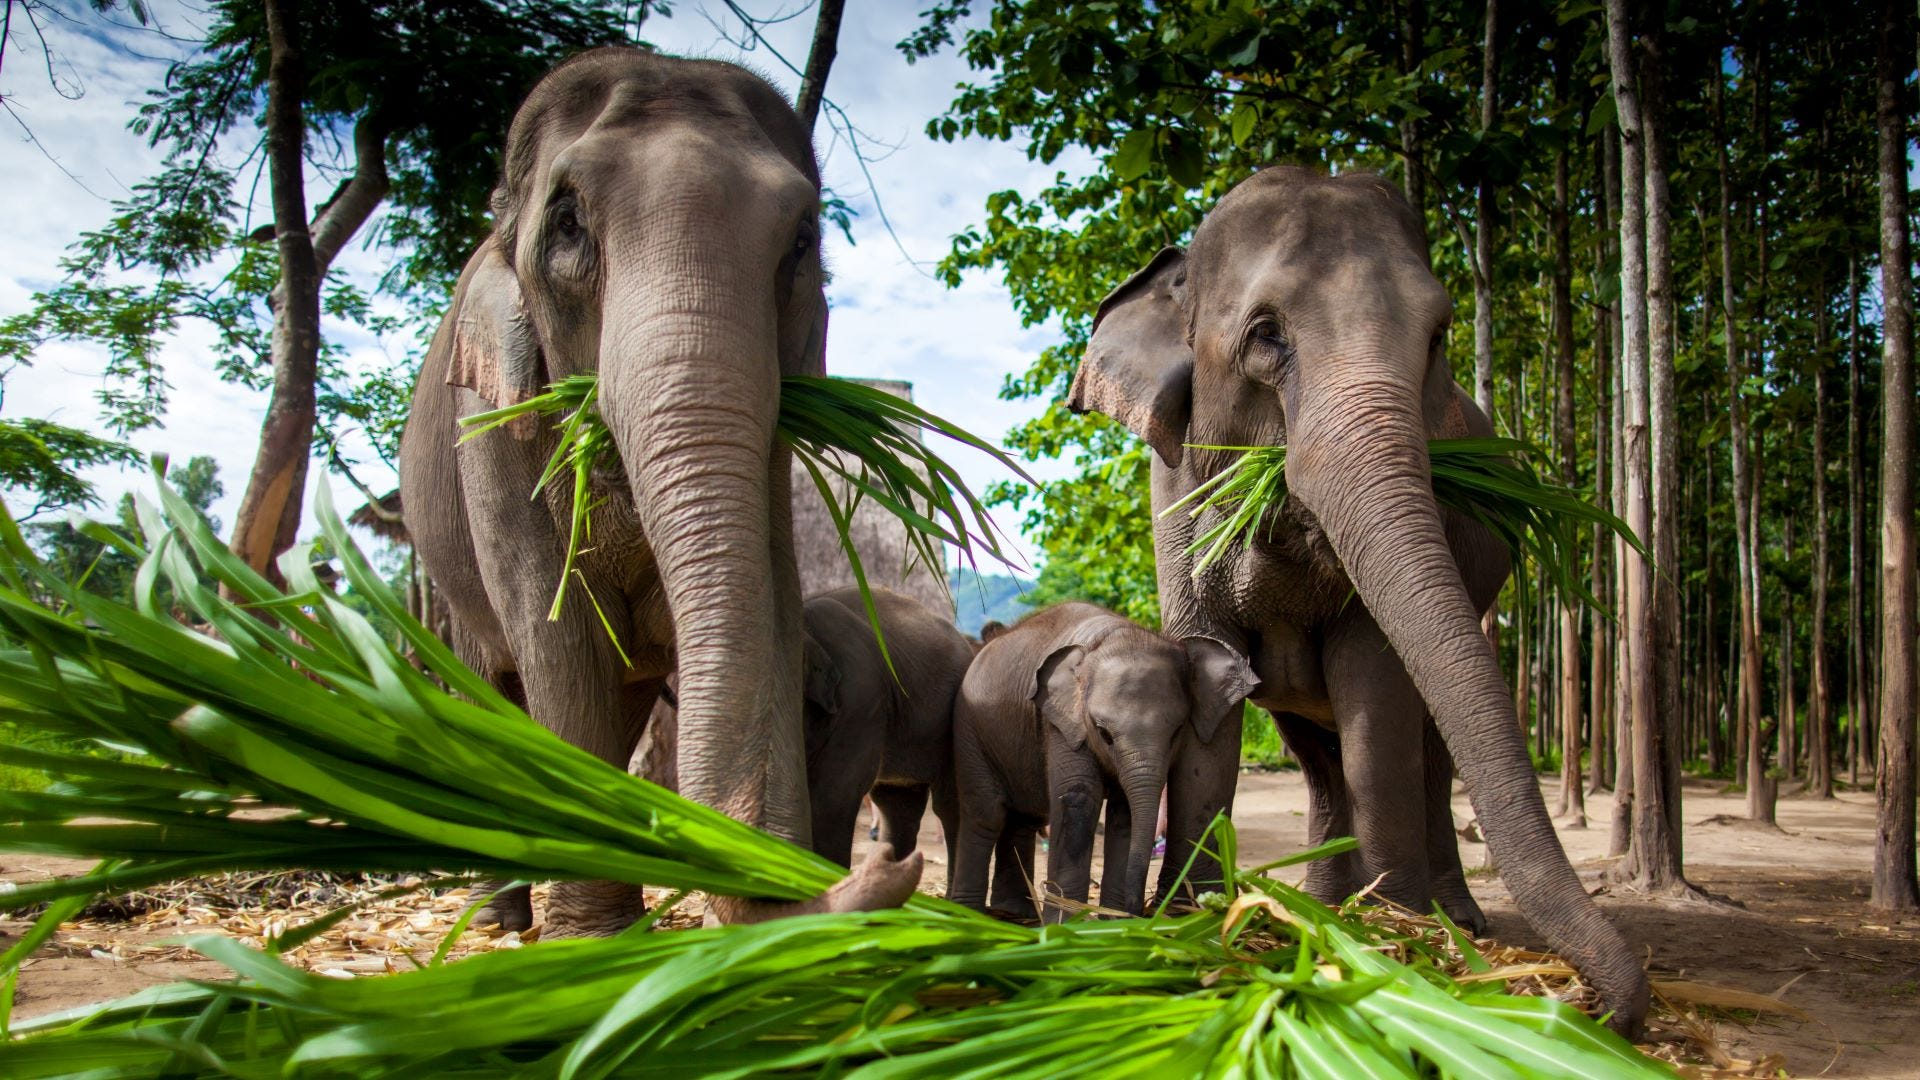 Two adult and two baby elephants eating sugarcane in Thailand.